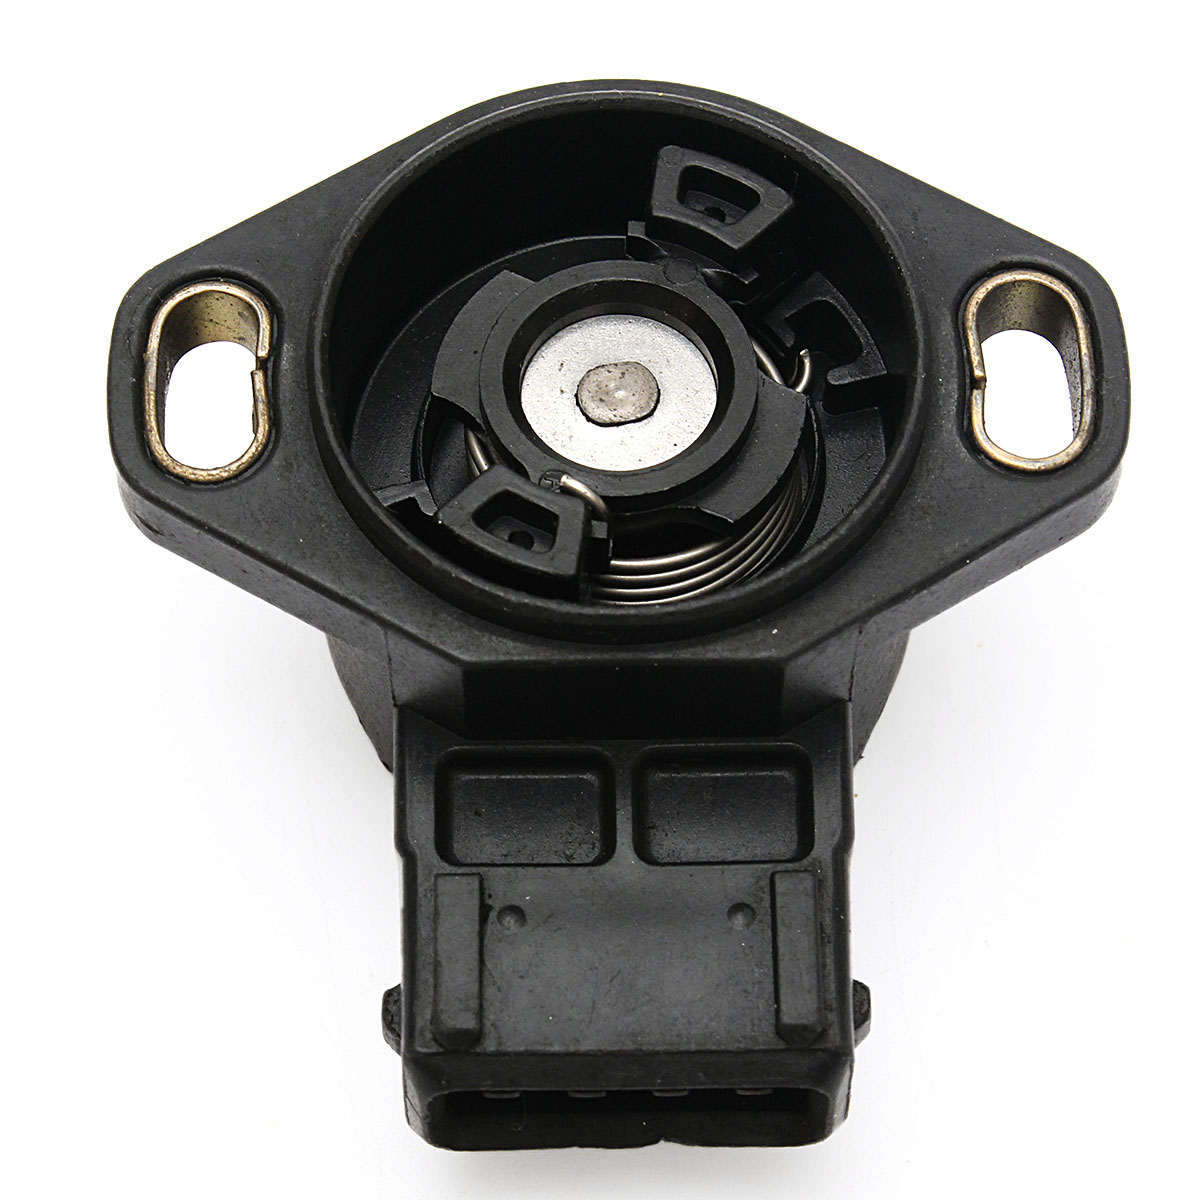 Compare Prices On Mitsubishi Pajero Throttle Body Online: Buy MD614772 NEW THROTTLE POSITION SENSOR TPS MD614734 FOR